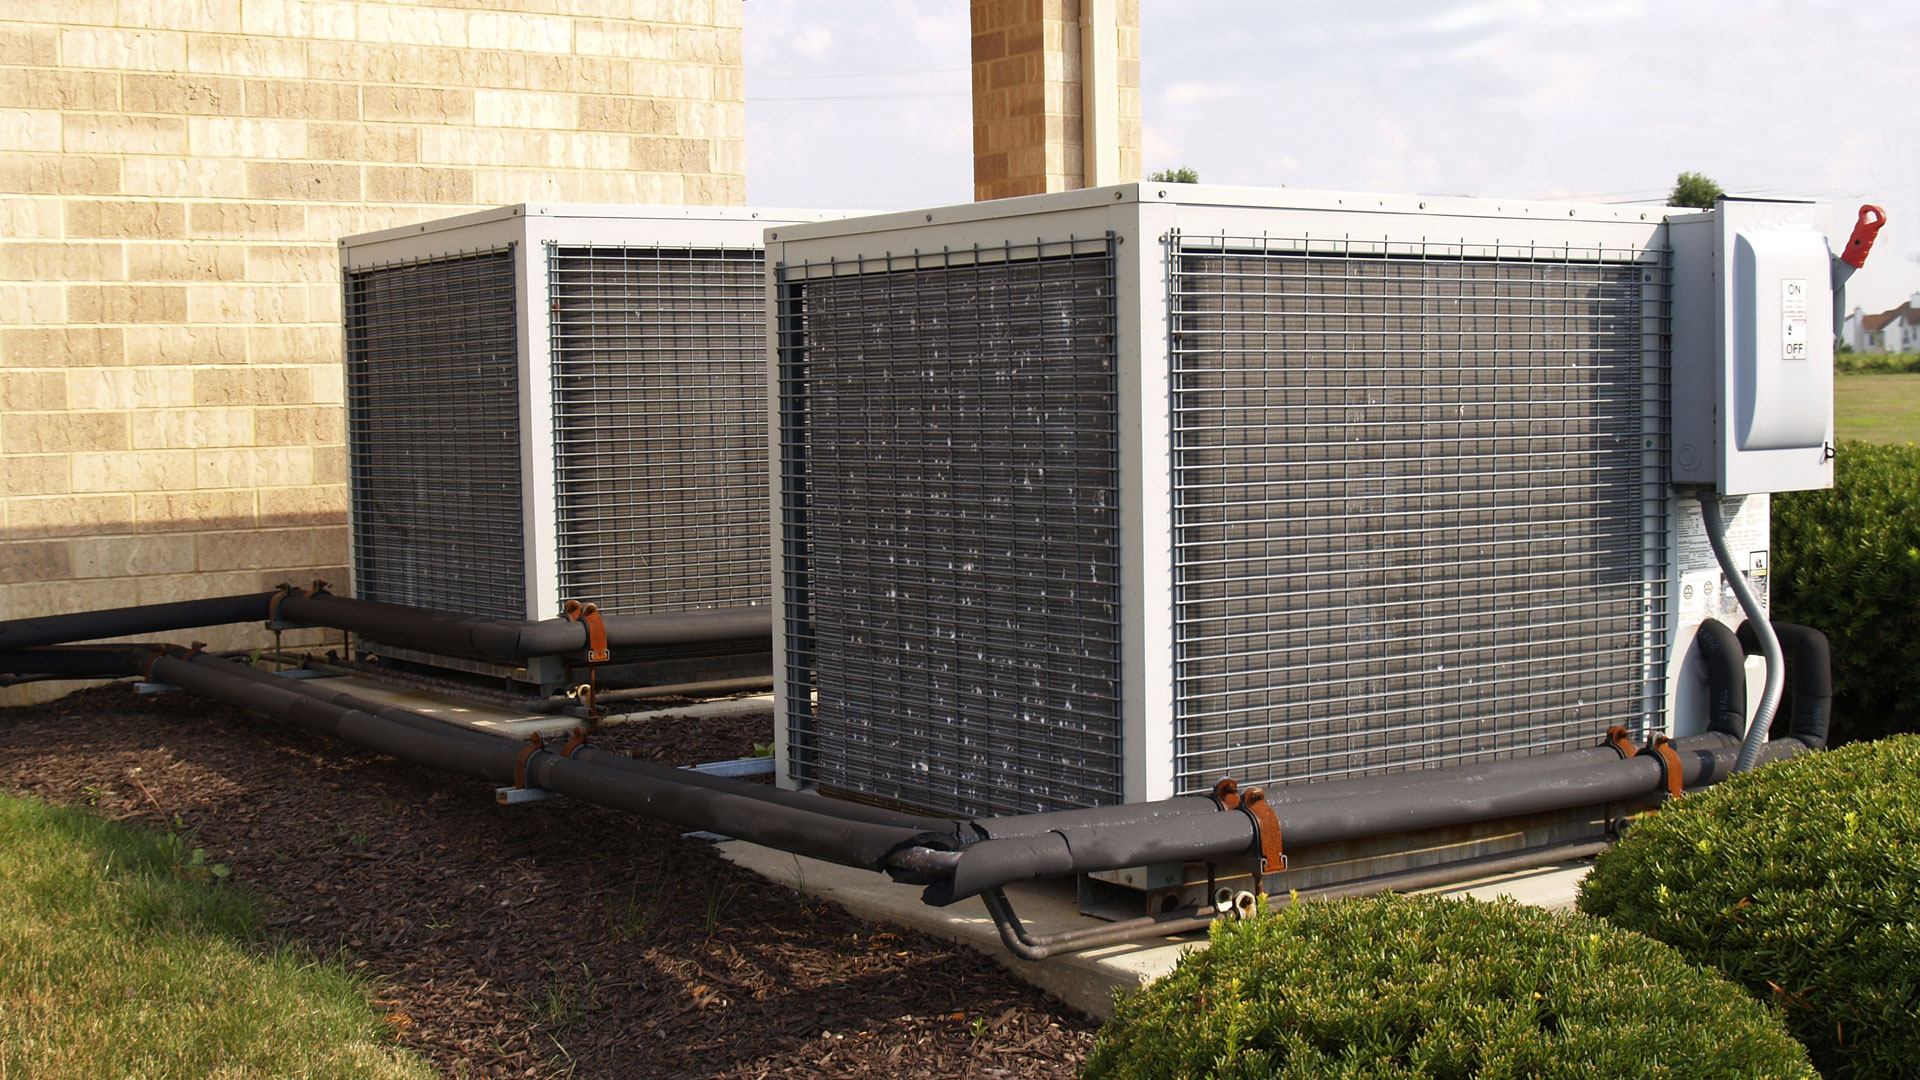 Sugar Land Residential HVAC